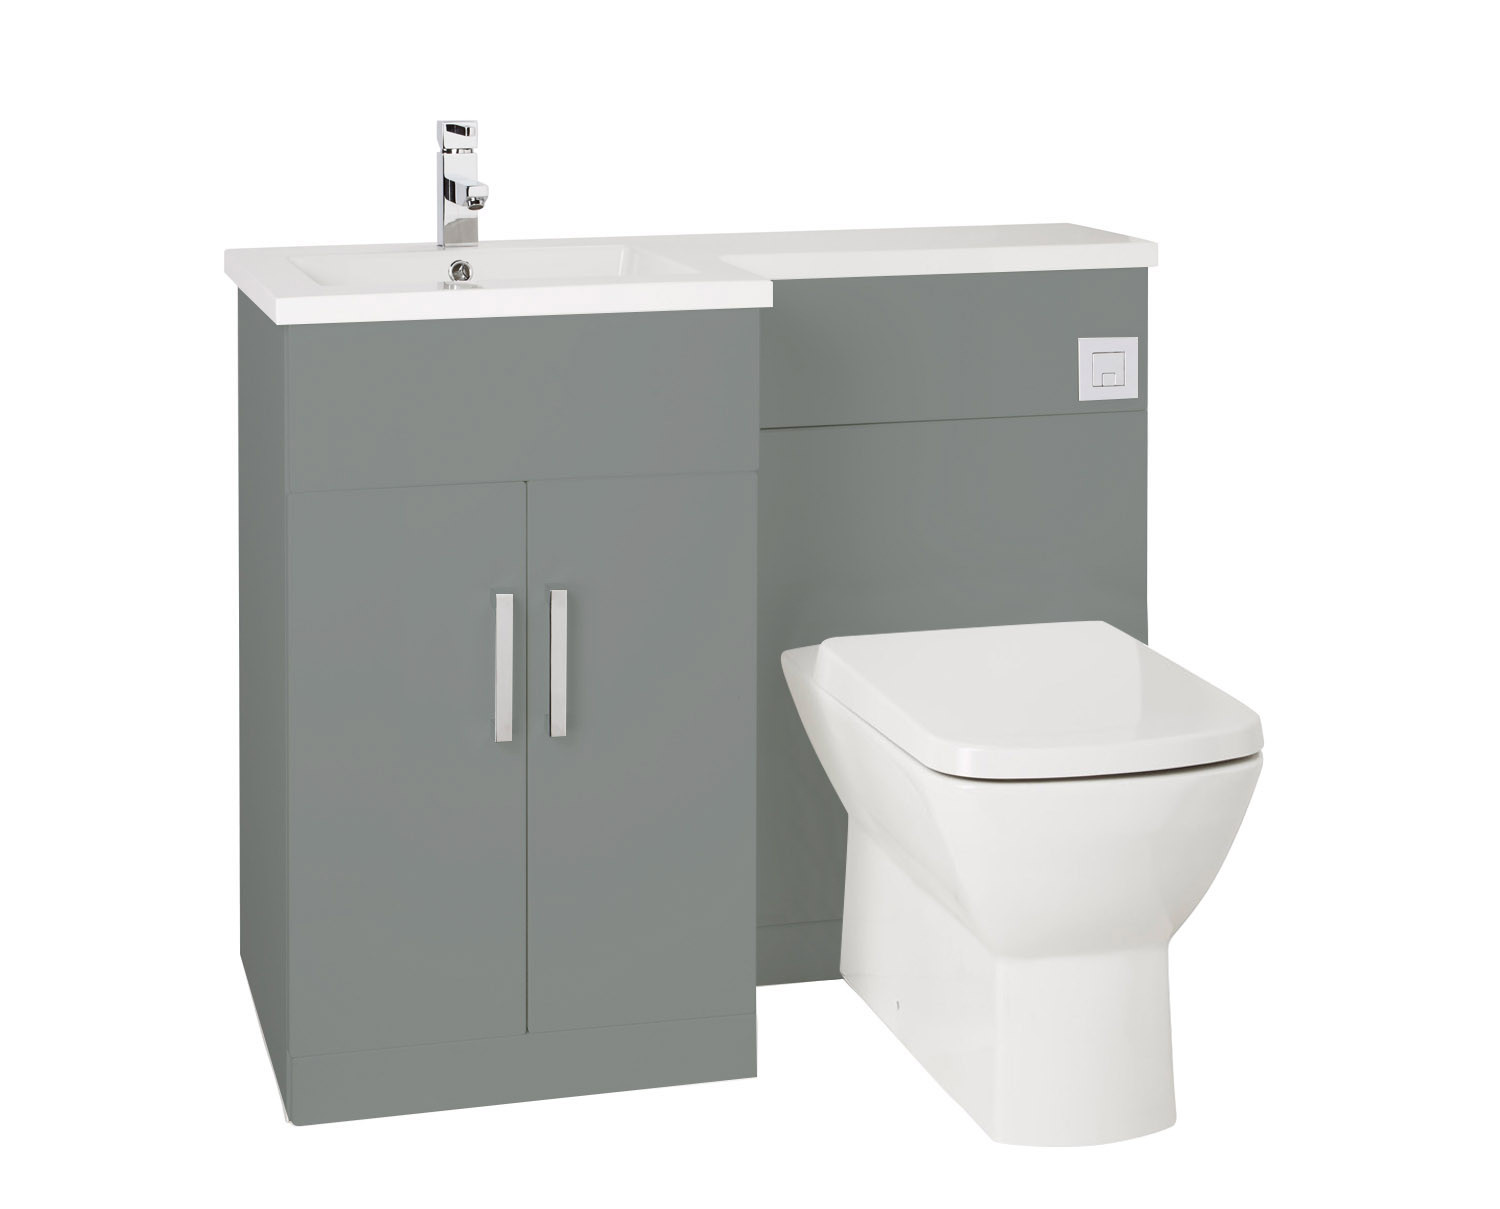 Sensational Aquatrend Petite Left Hand Back To Wall Basin And Toilet Pdpeps Interior Chair Design Pdpepsorg